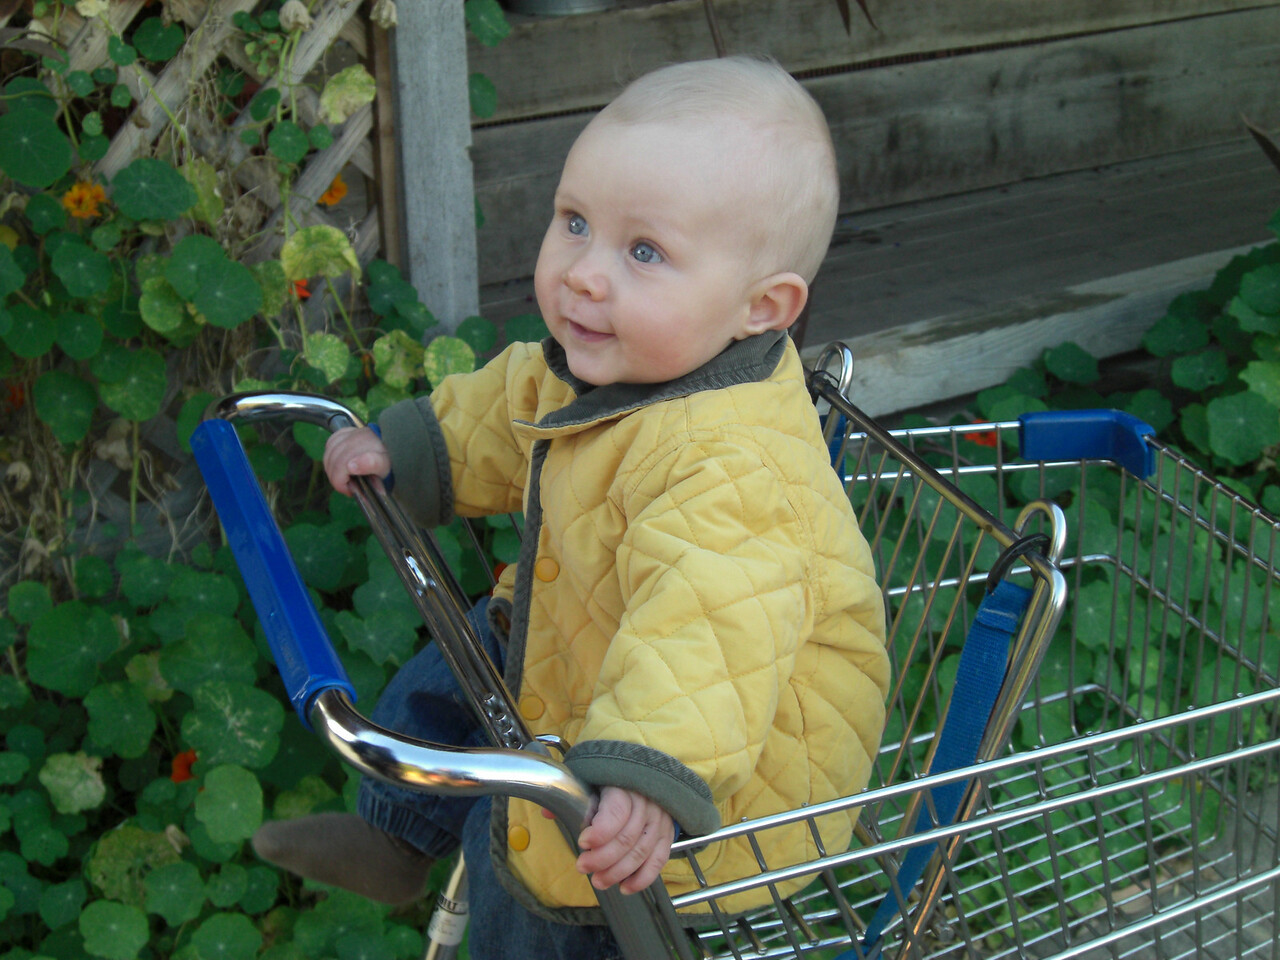 My first cart ride with Oma - that's who I am staring at